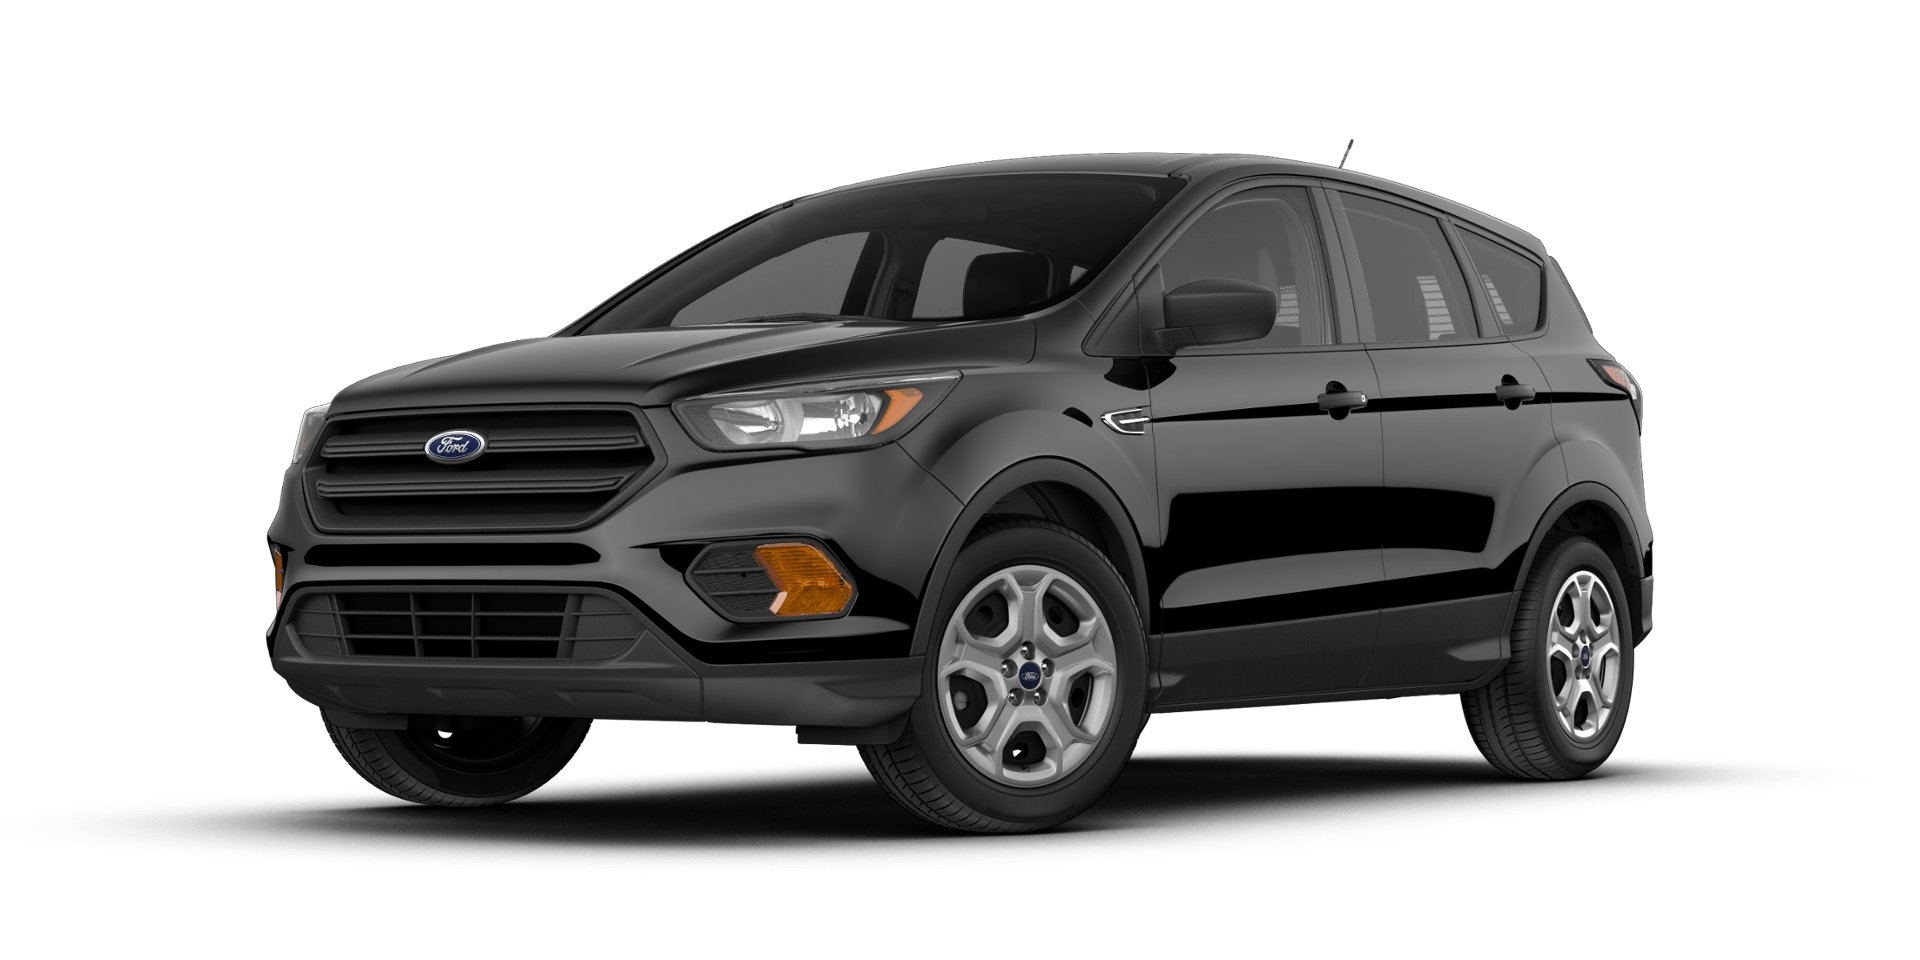 ford escape 2018 colors. 2018 ford escape shadow black side view colors n